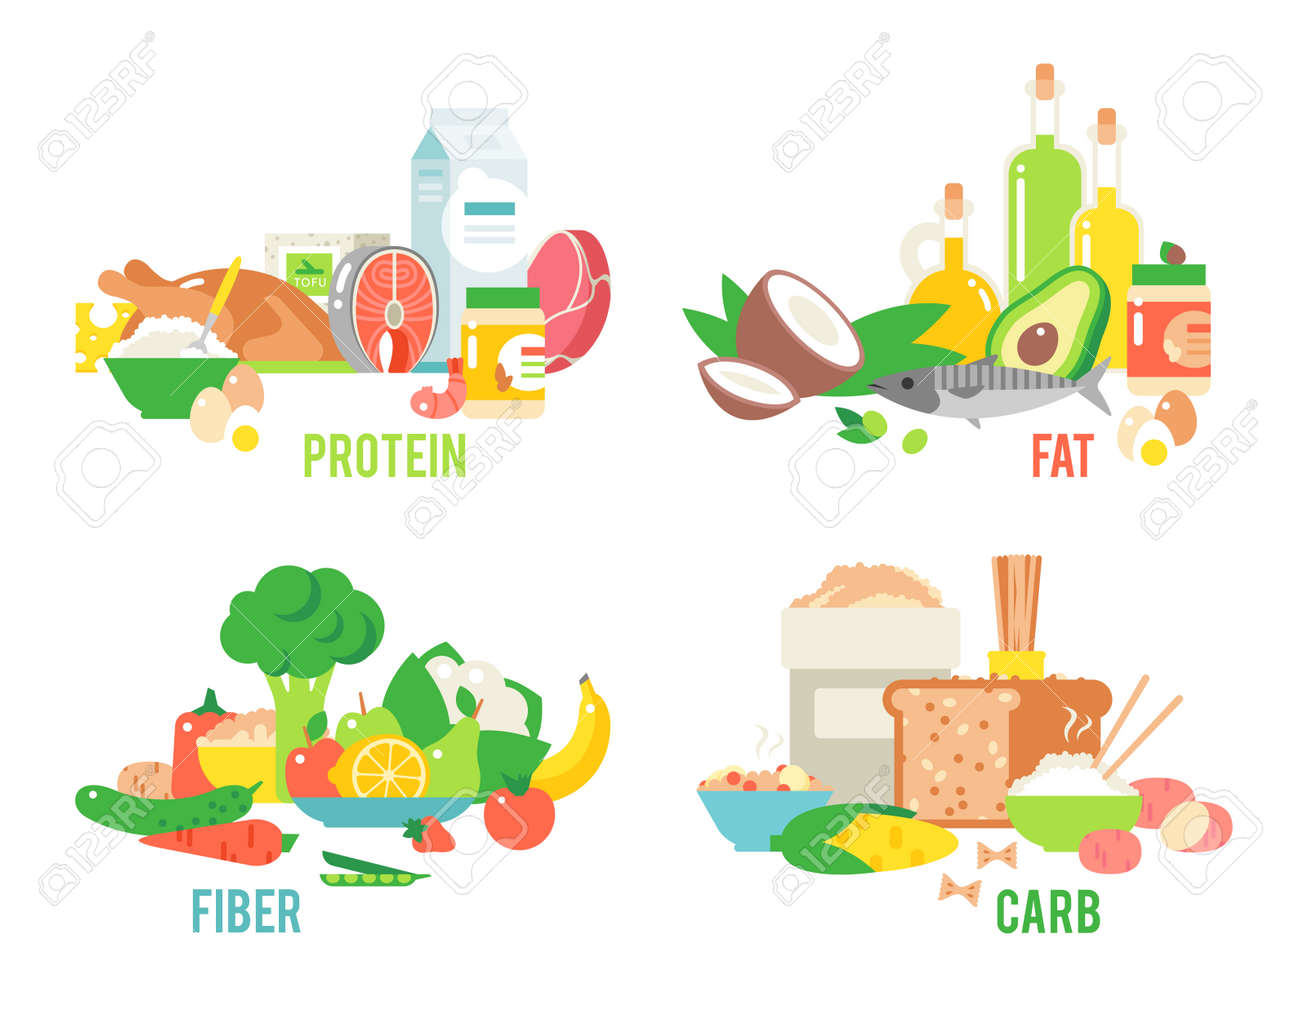 What are carbohydrates? | Carbohydrates, Diet drinks, Carbohydrates food